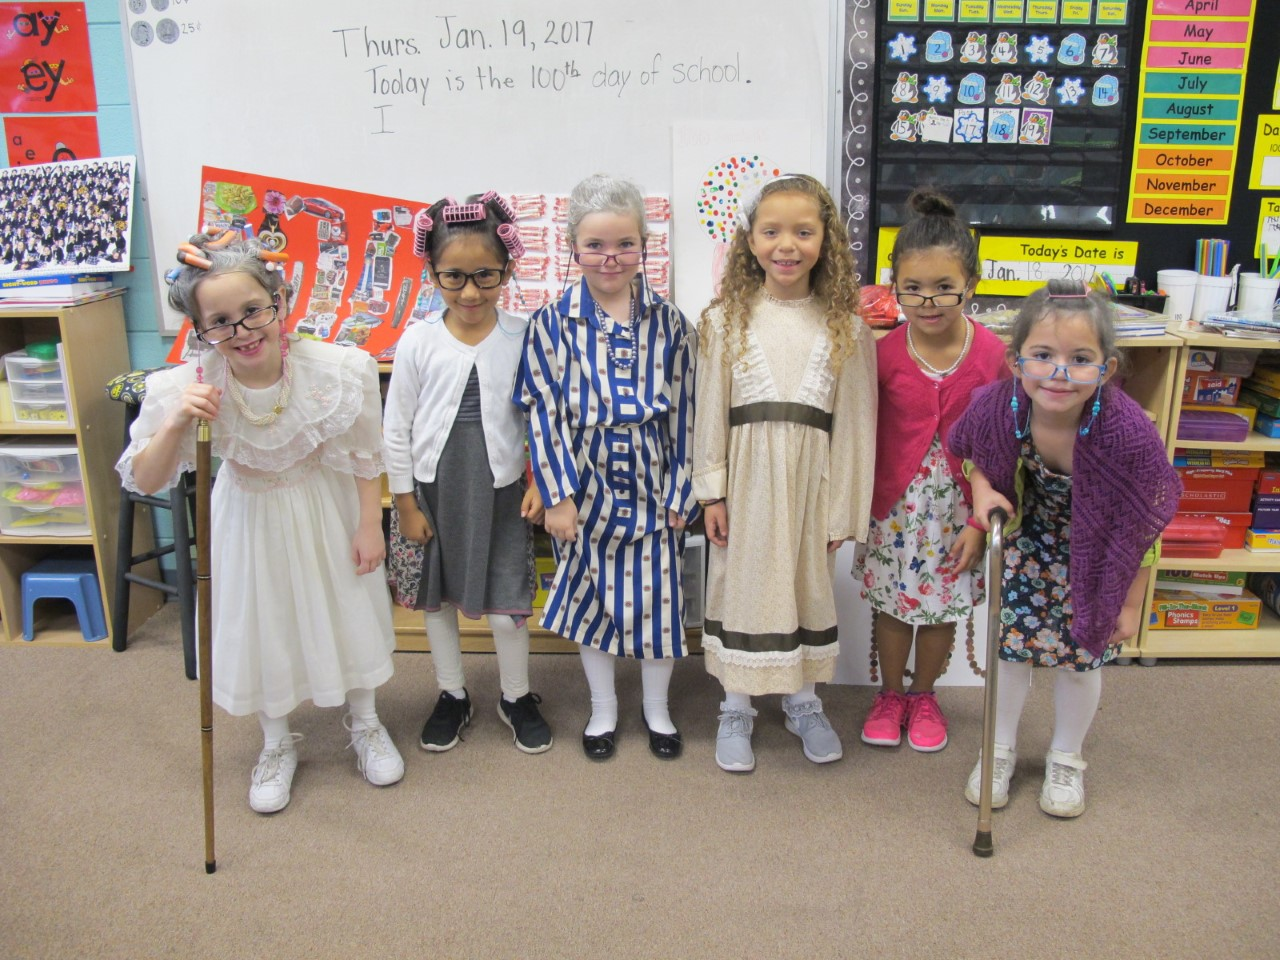 1st Grade Celebrates with dressing up as 100 year-old person